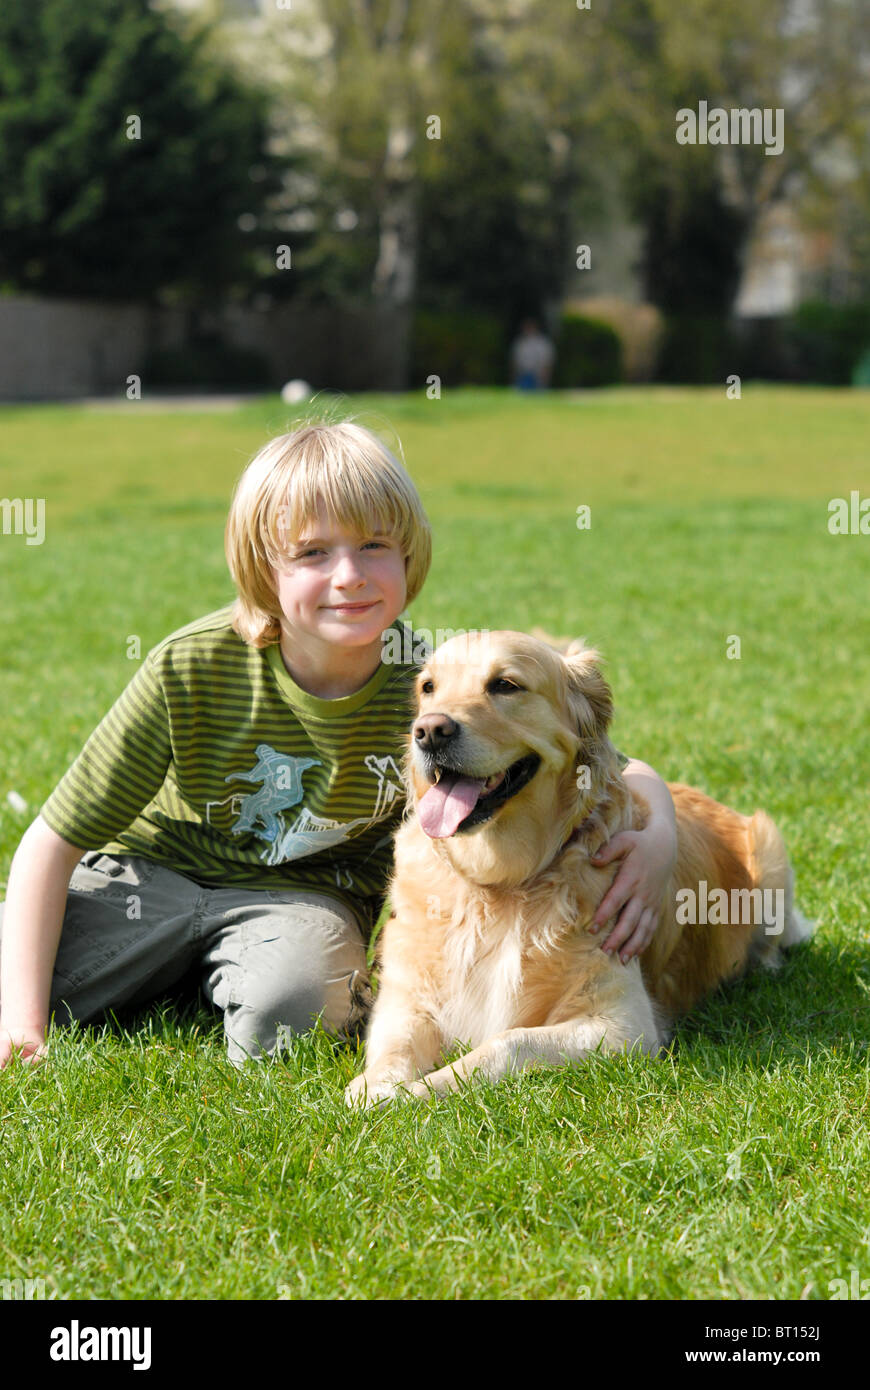 Blond-haired boy sitting on the grass in a park hugging his Golden Retriever pet dog on a hot sunny day - Stock Image